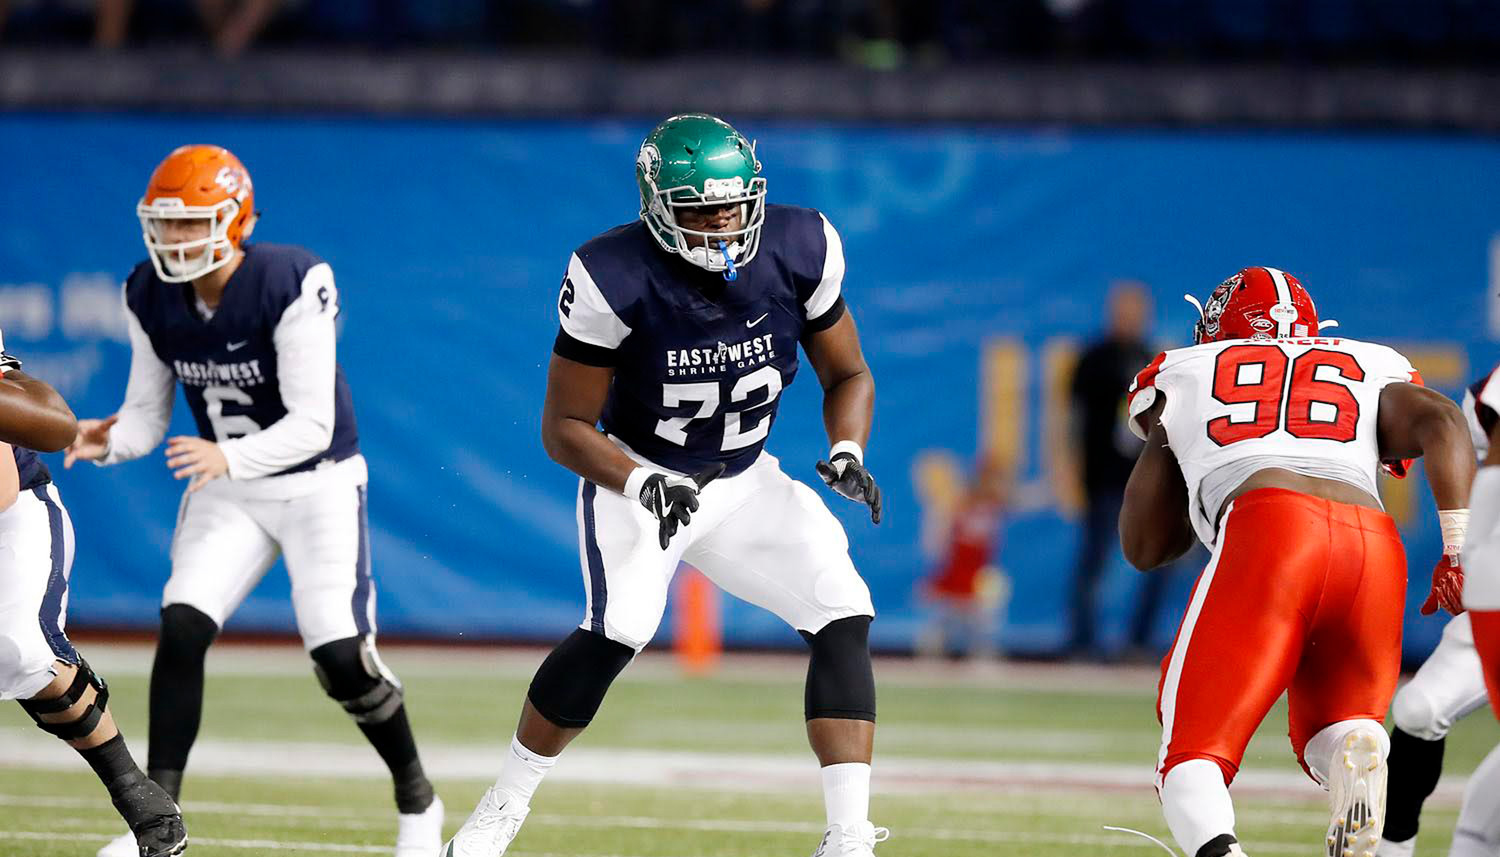 Elmont Native Greg Senat, at left above, playing for the West in the 93rd East-West Shrine All-Star Game on Jan. 20, was invited to the NFL Combine. He was a member of the Wagner University Seahawks' offensive line.